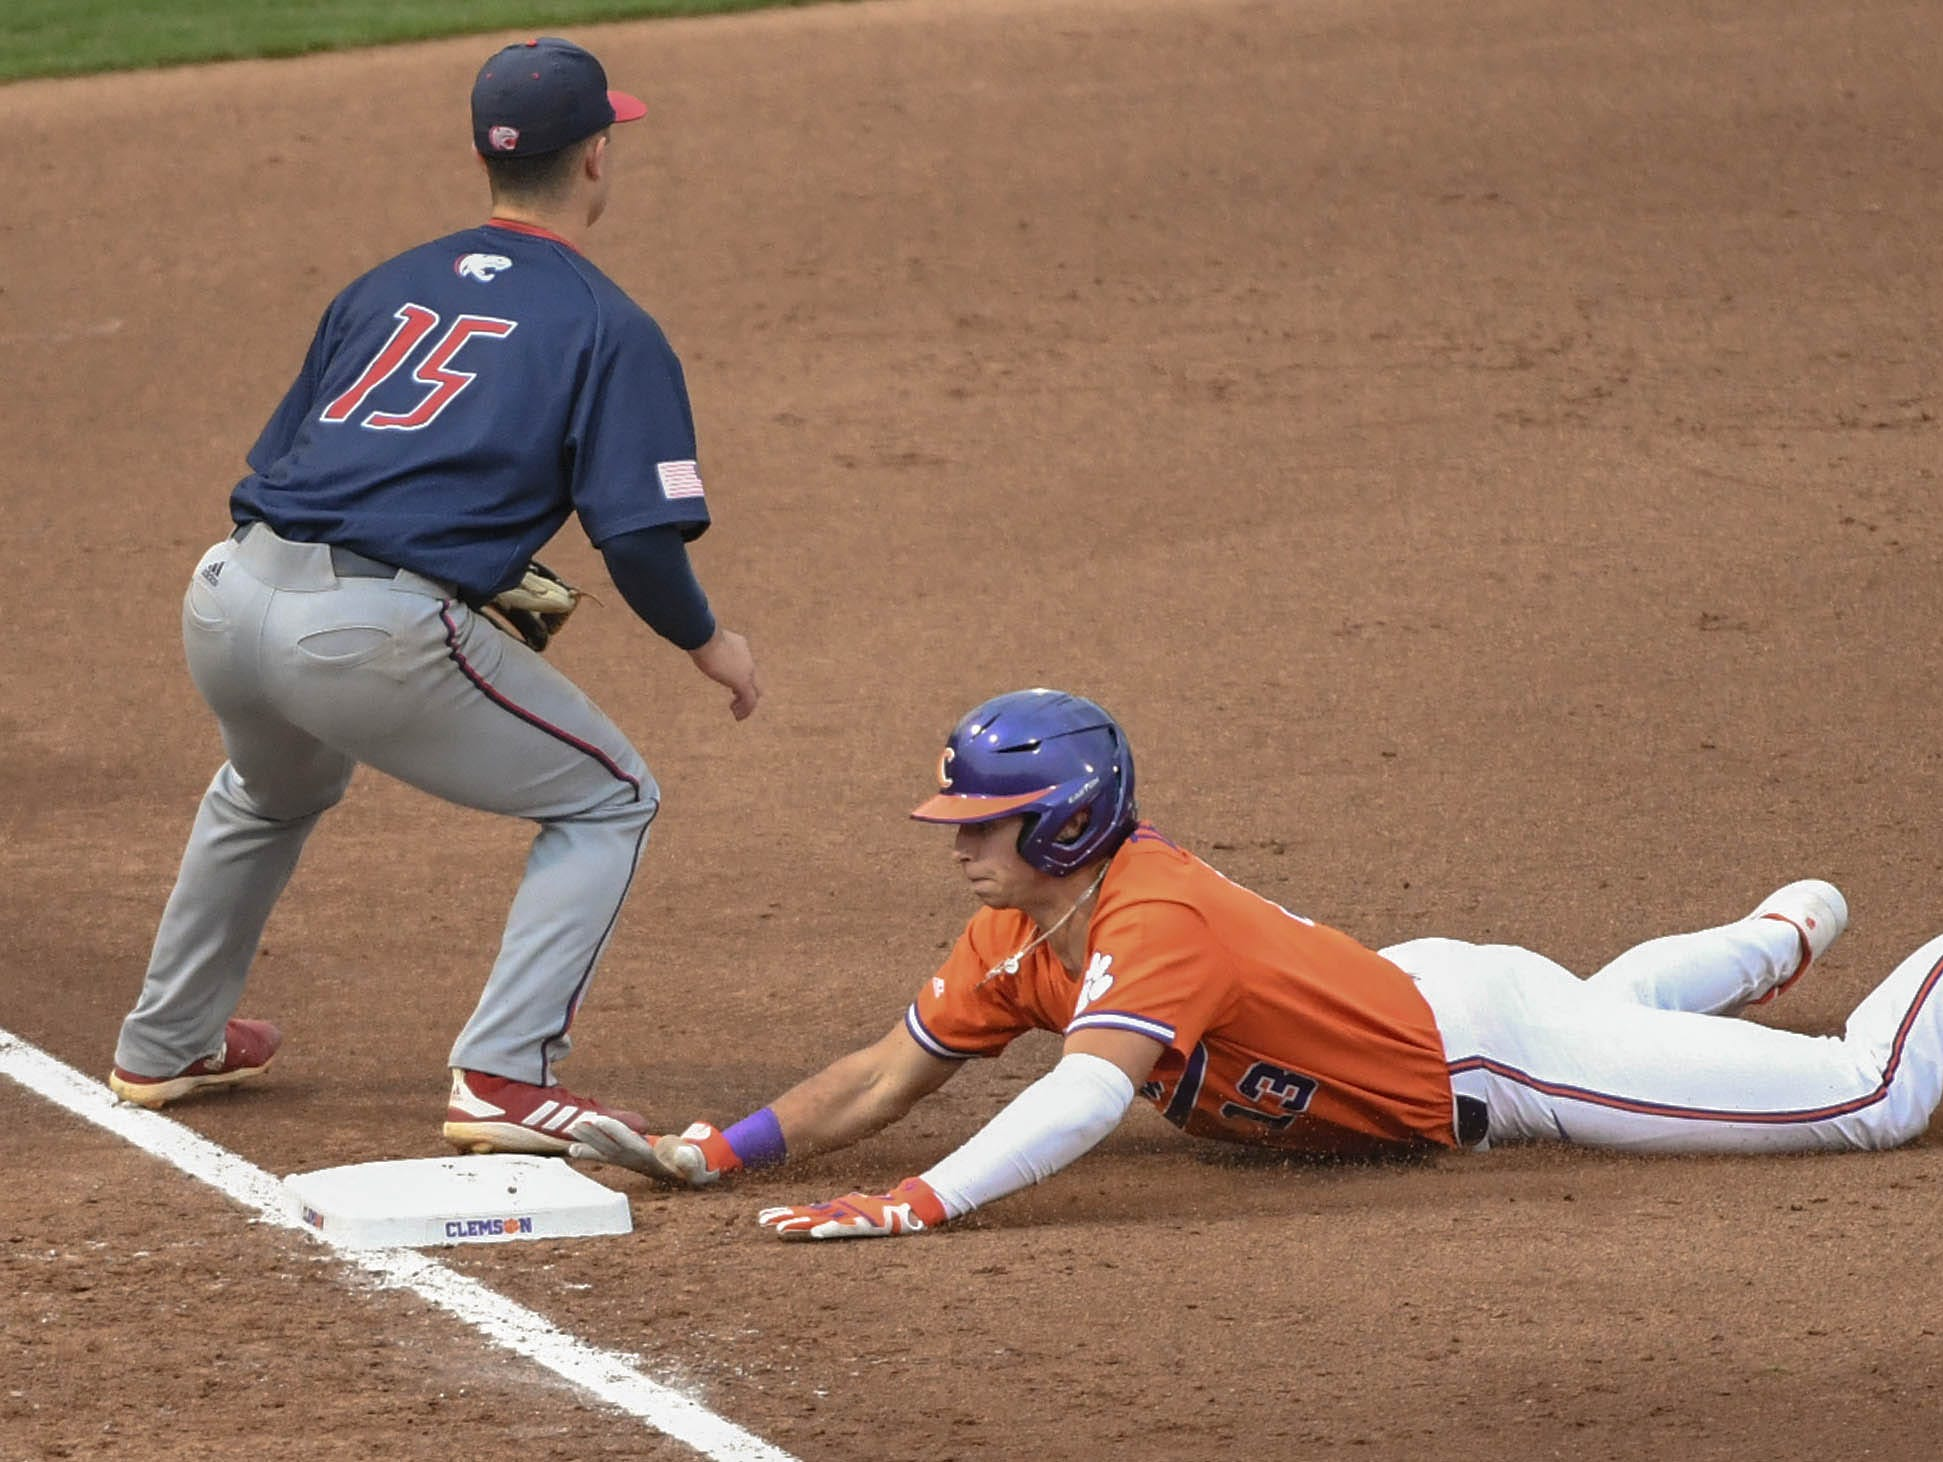 Clemson sophomore Bryce Teodosio(13) advances to third base near South Alabama infielder Kaleb DeLaTorre (15) during the bottom of the eighth inning at Doug Kingsmore Stadium in Clemson Friday, February 15, 2019.